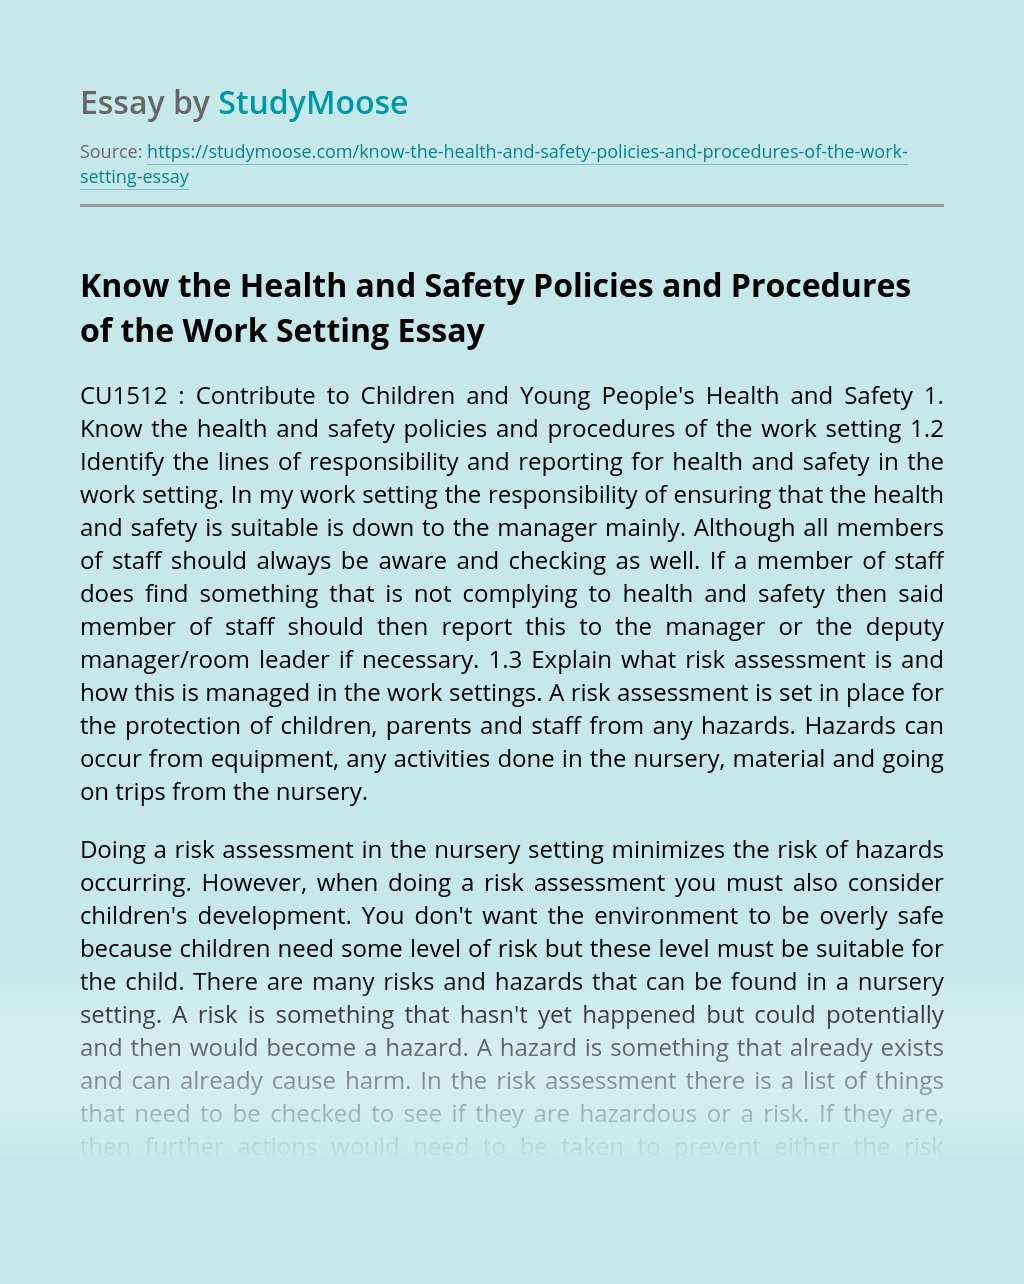 Know the Health and Safety Policies and Procedures of the Work Setting